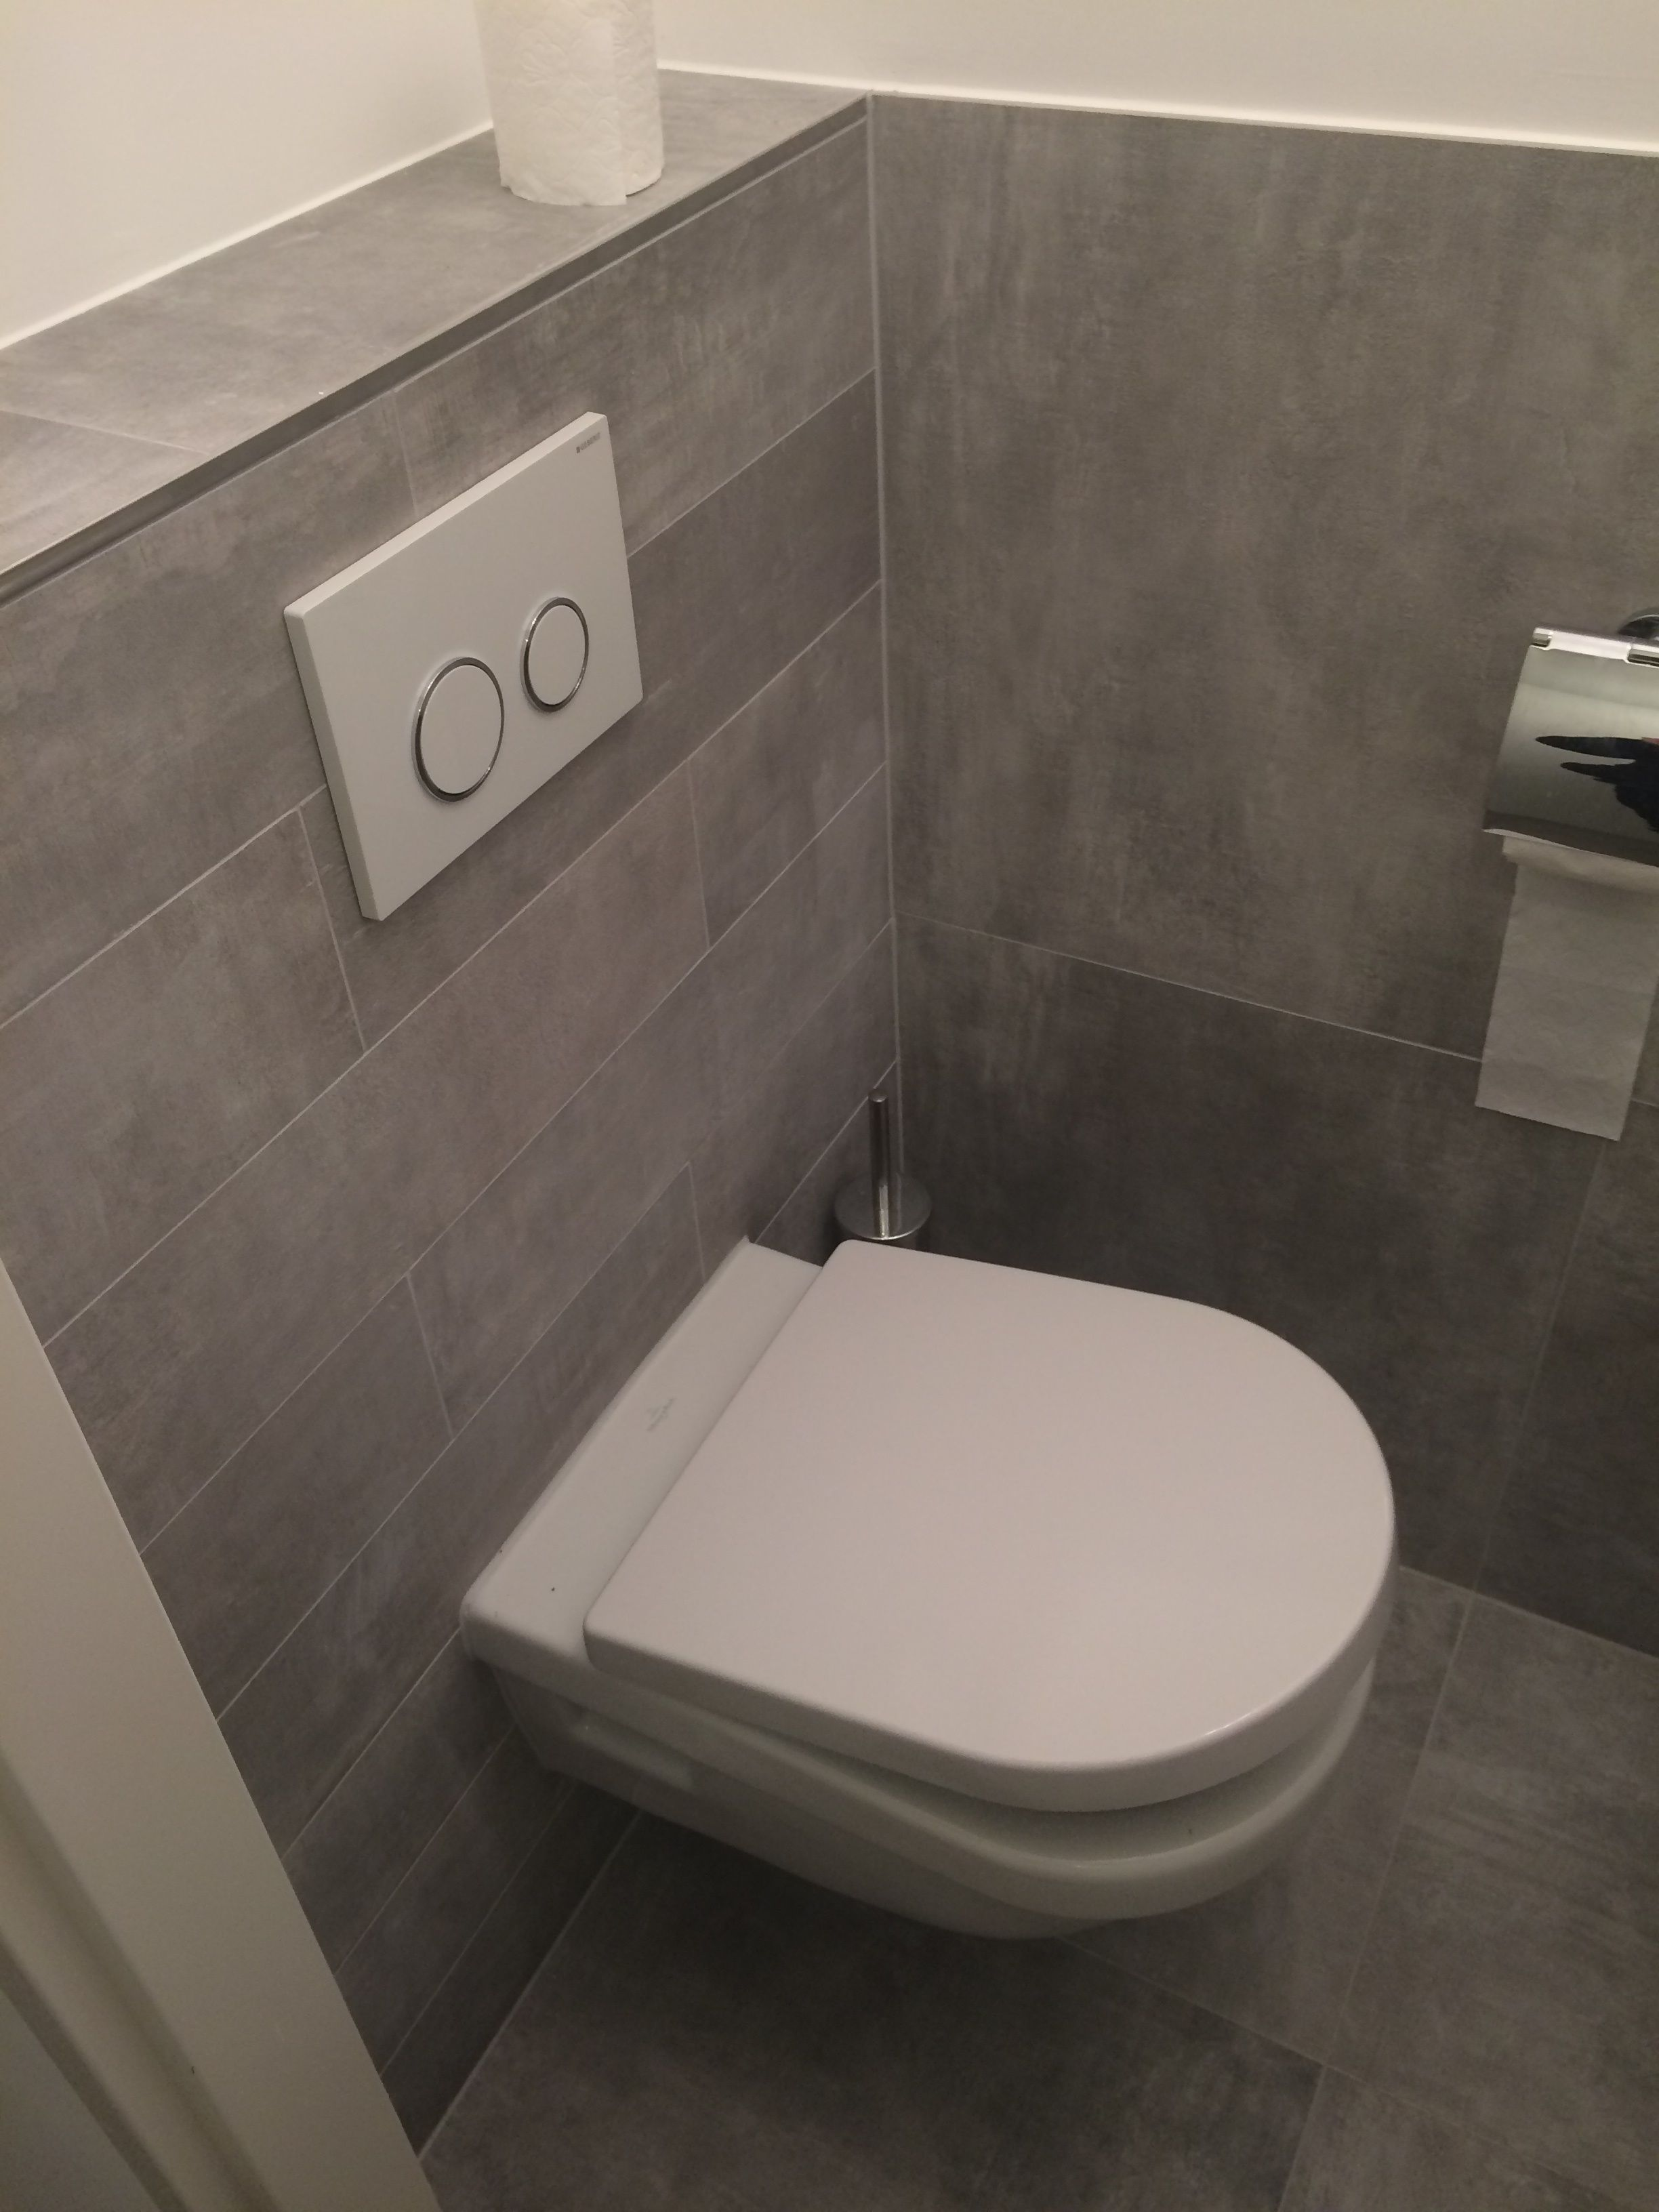 Betonlook Tegels Unicom Starker Icon Dove Grey Toilet Pinterest - Kleine toilette fliesen